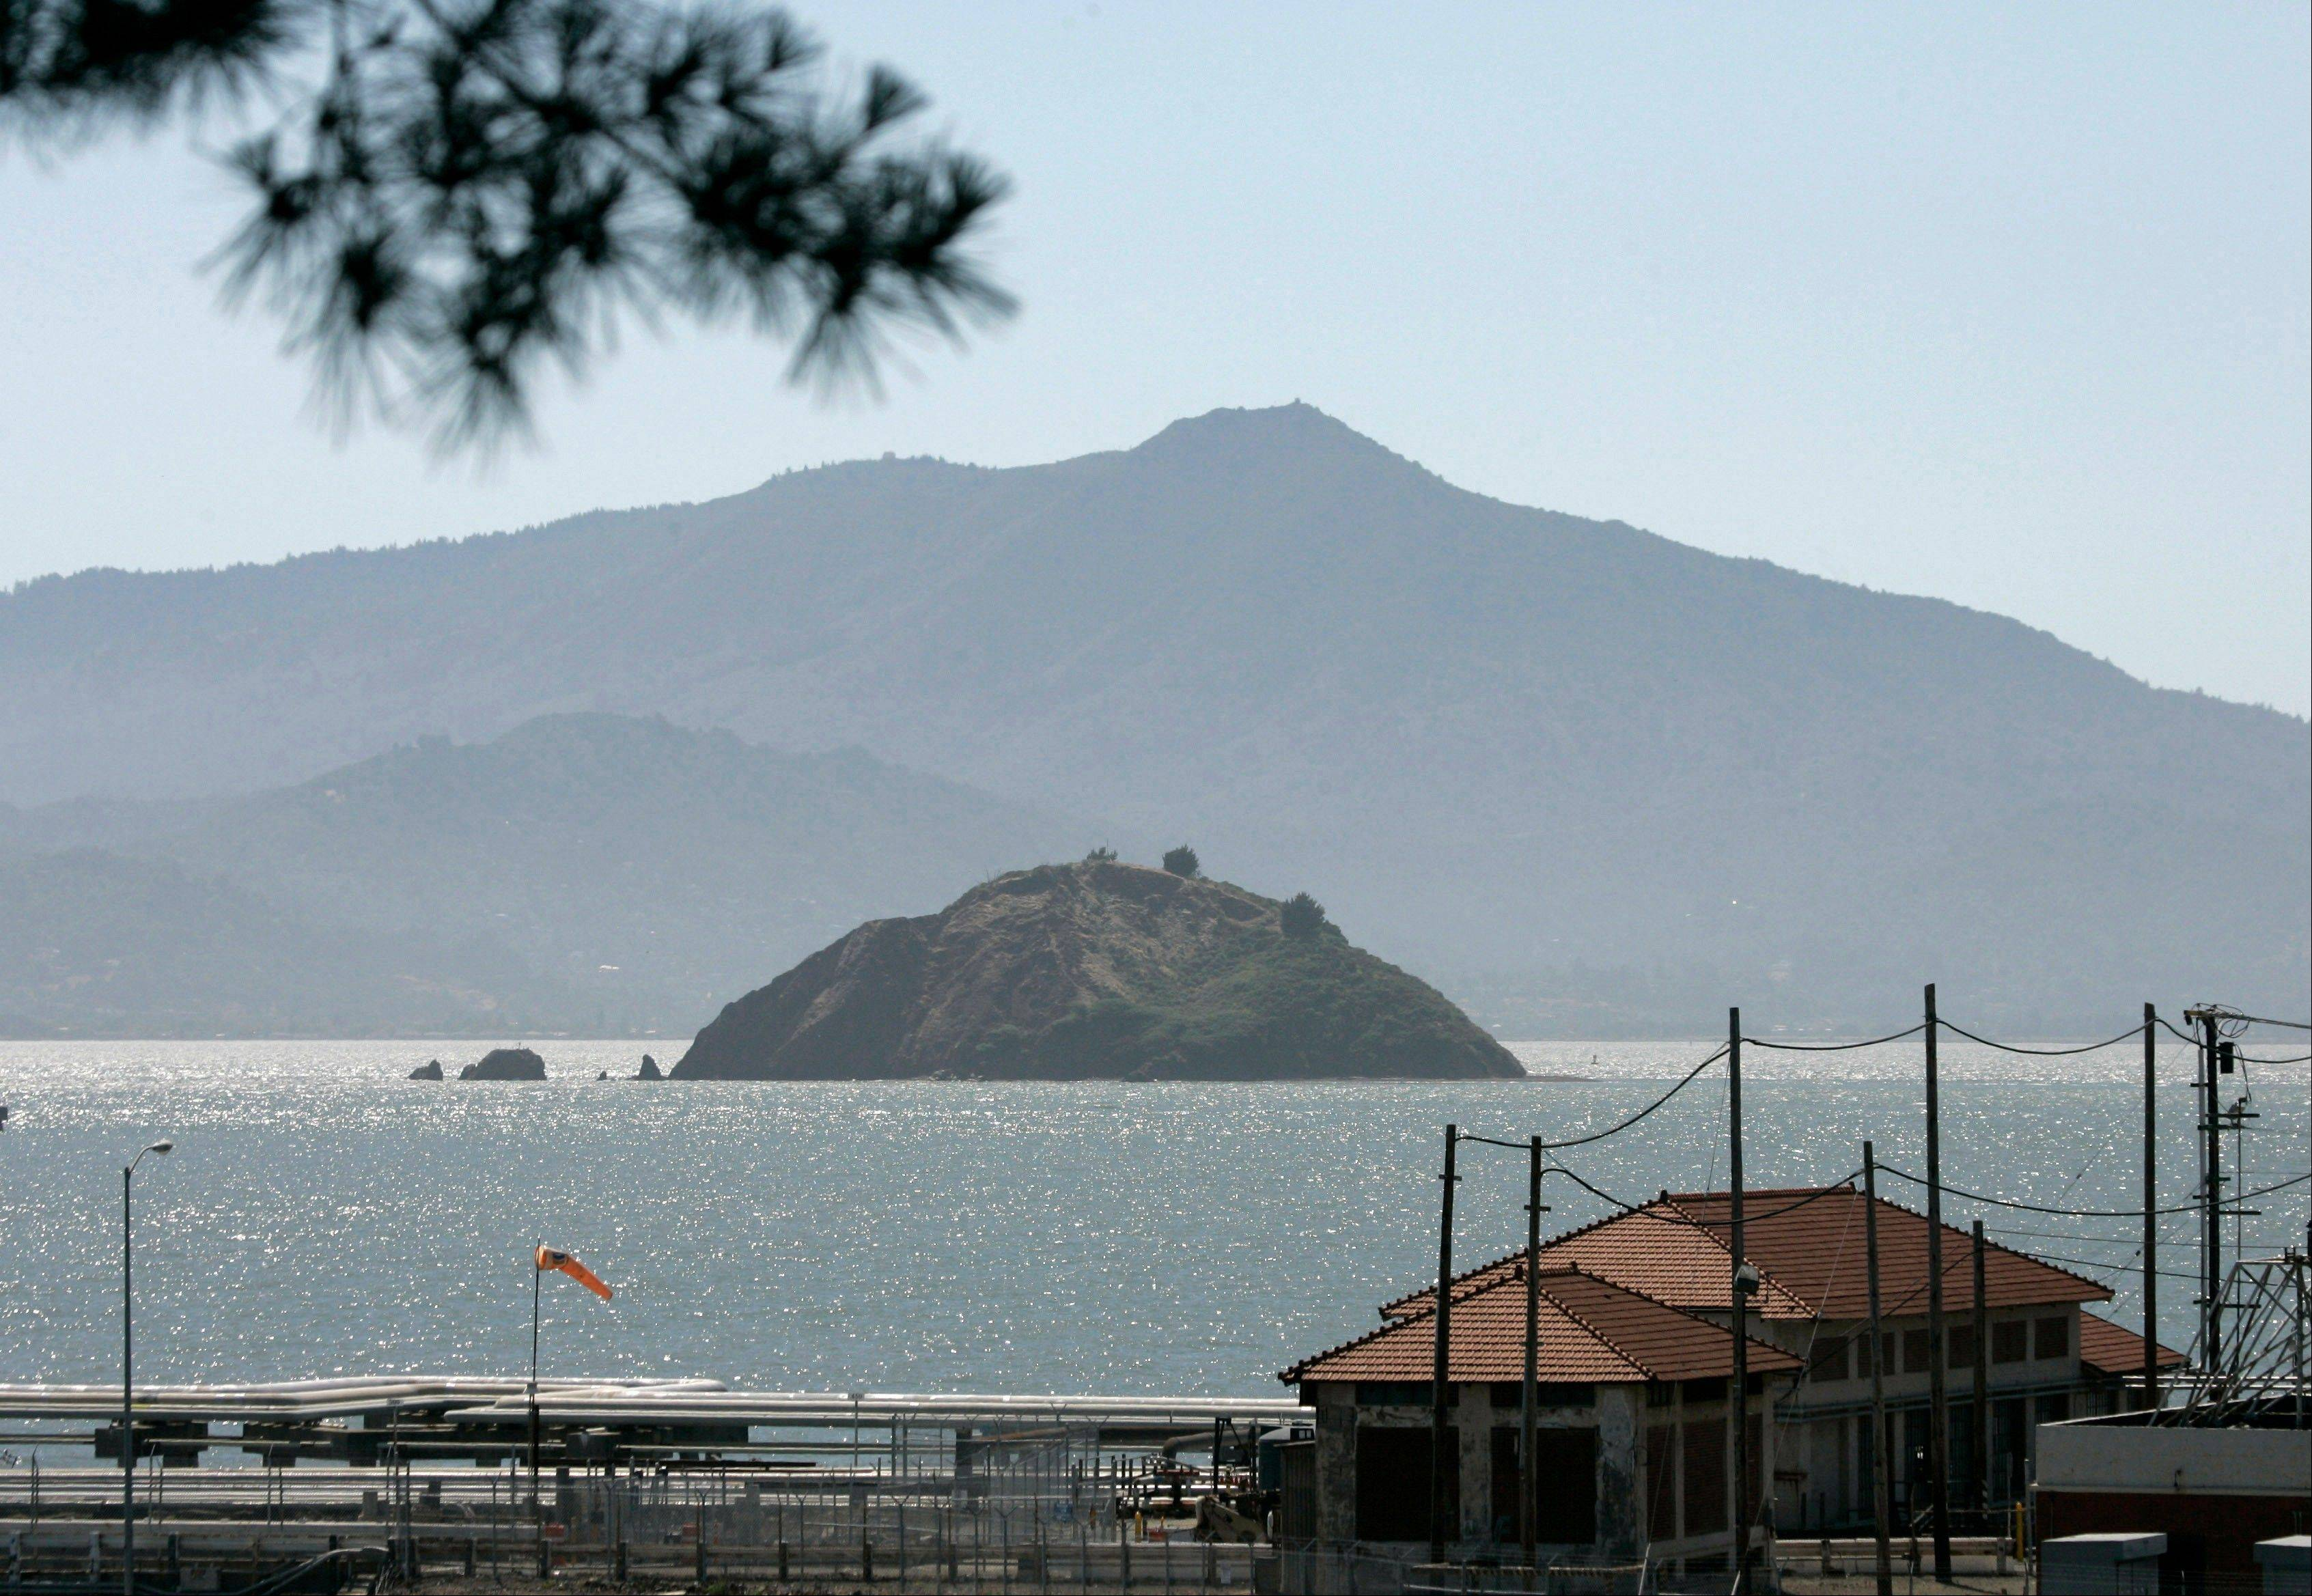 Red Rock Island with Mount Tamalpais in the background from Point Richmond, Calif.